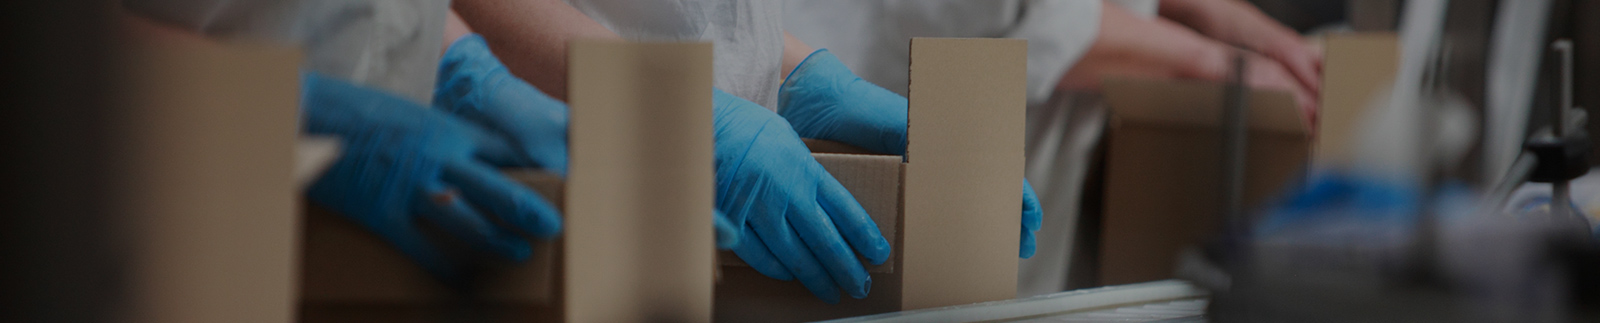 Ensuring the products you manufacture are safe and are free of counterfeit parts